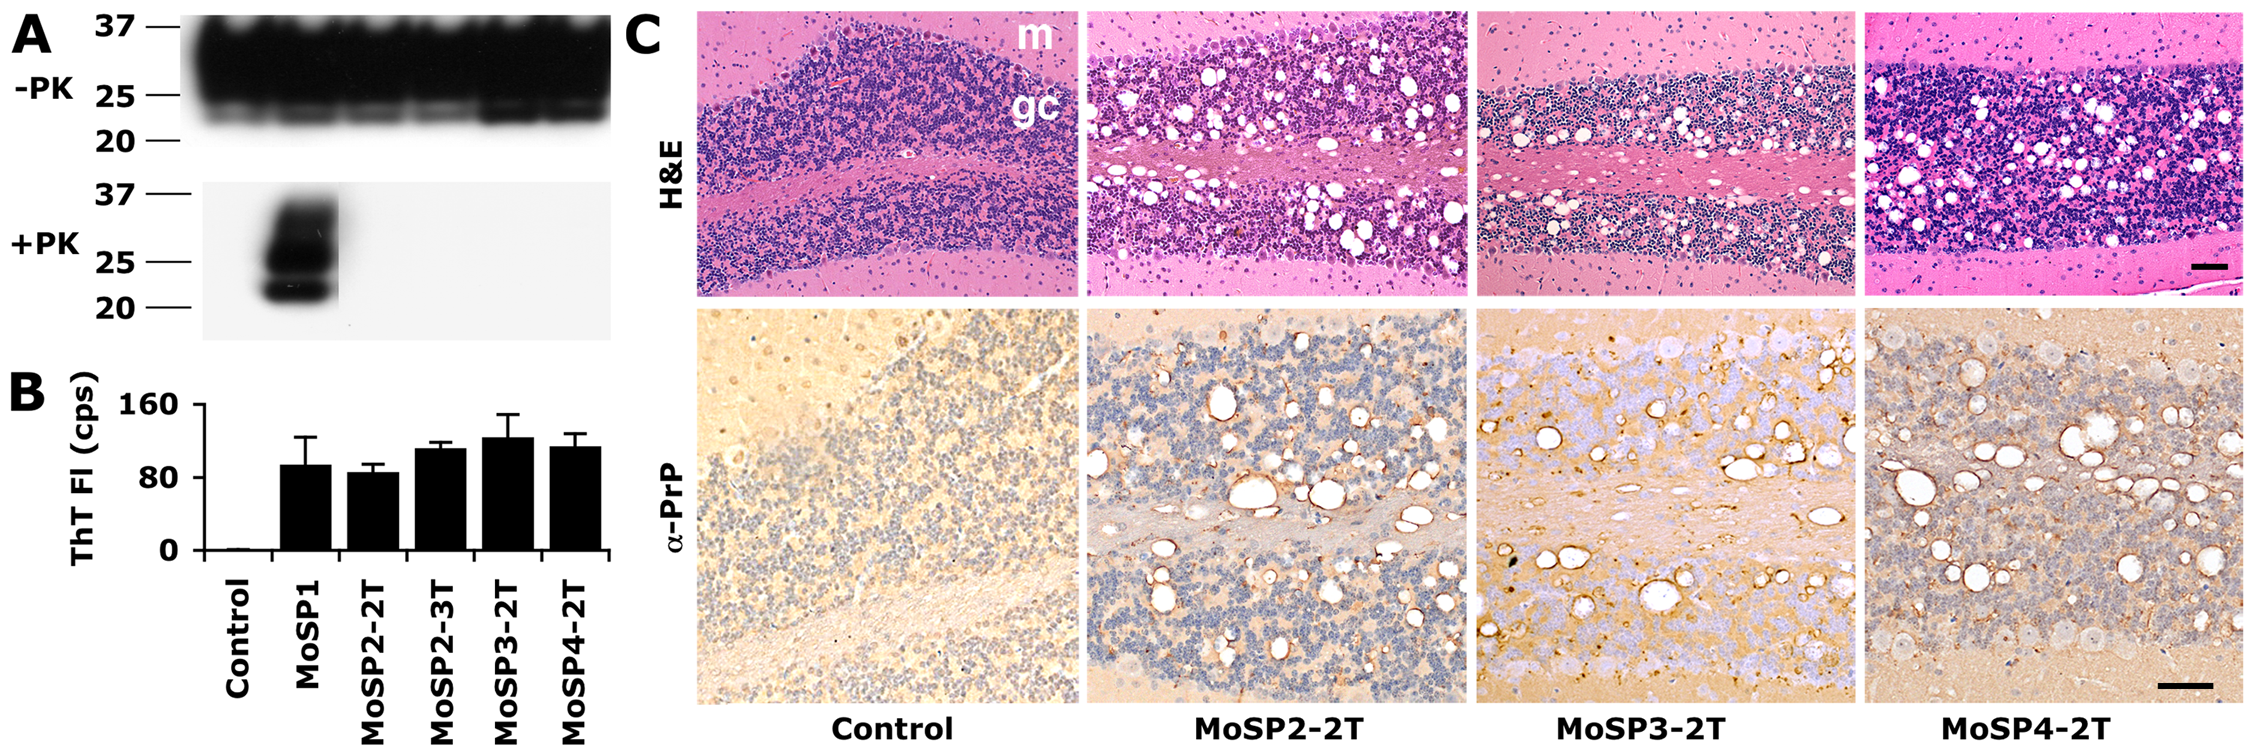 Protease-sensitive synthetic prions are serially transmissible in Tg9949 mice.